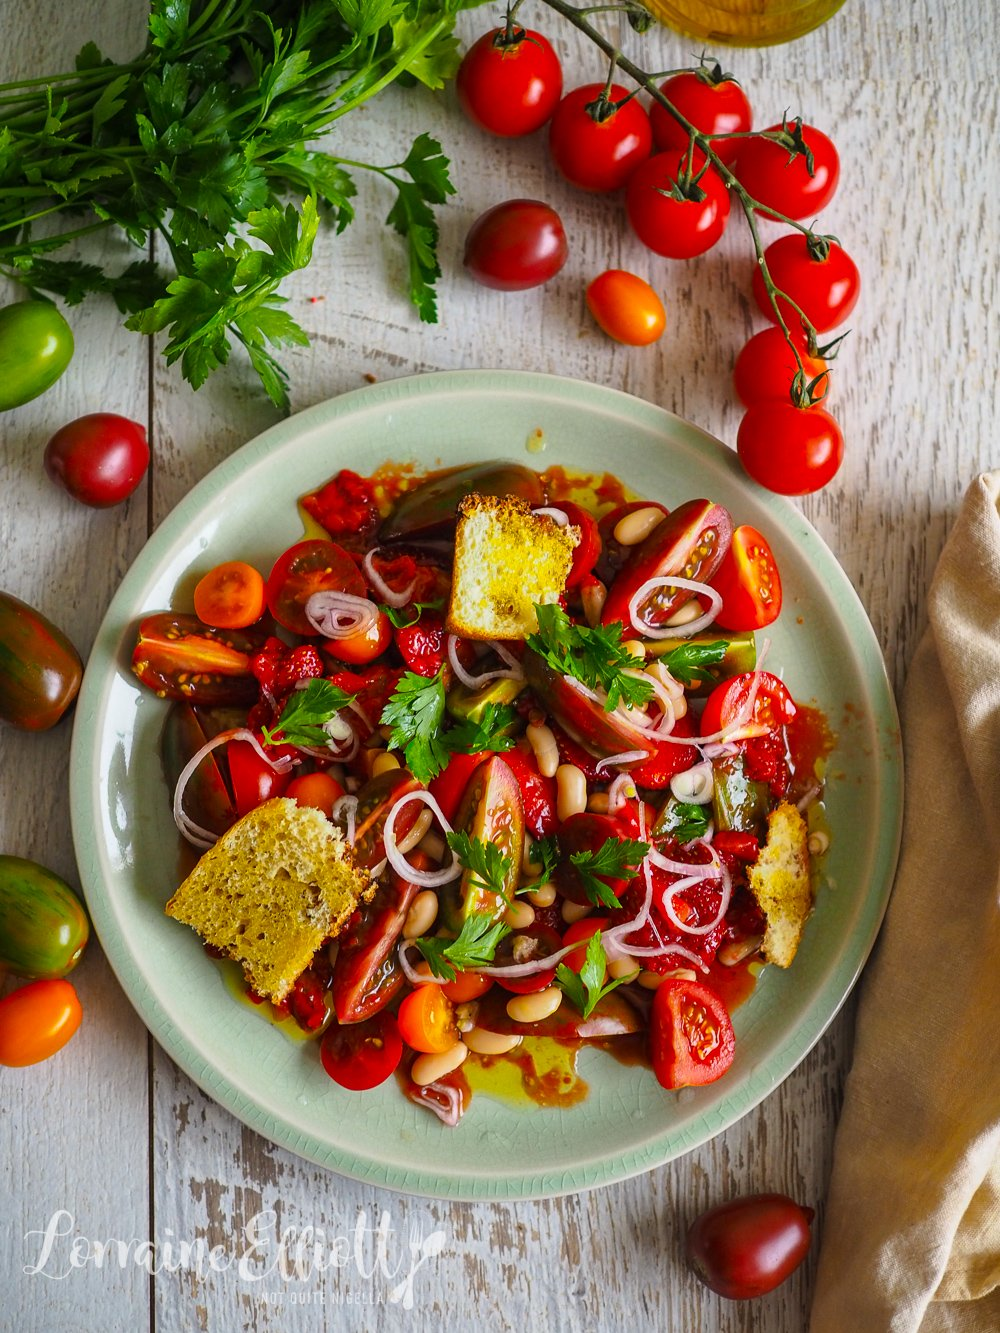 Tomato & Strawberry Salad